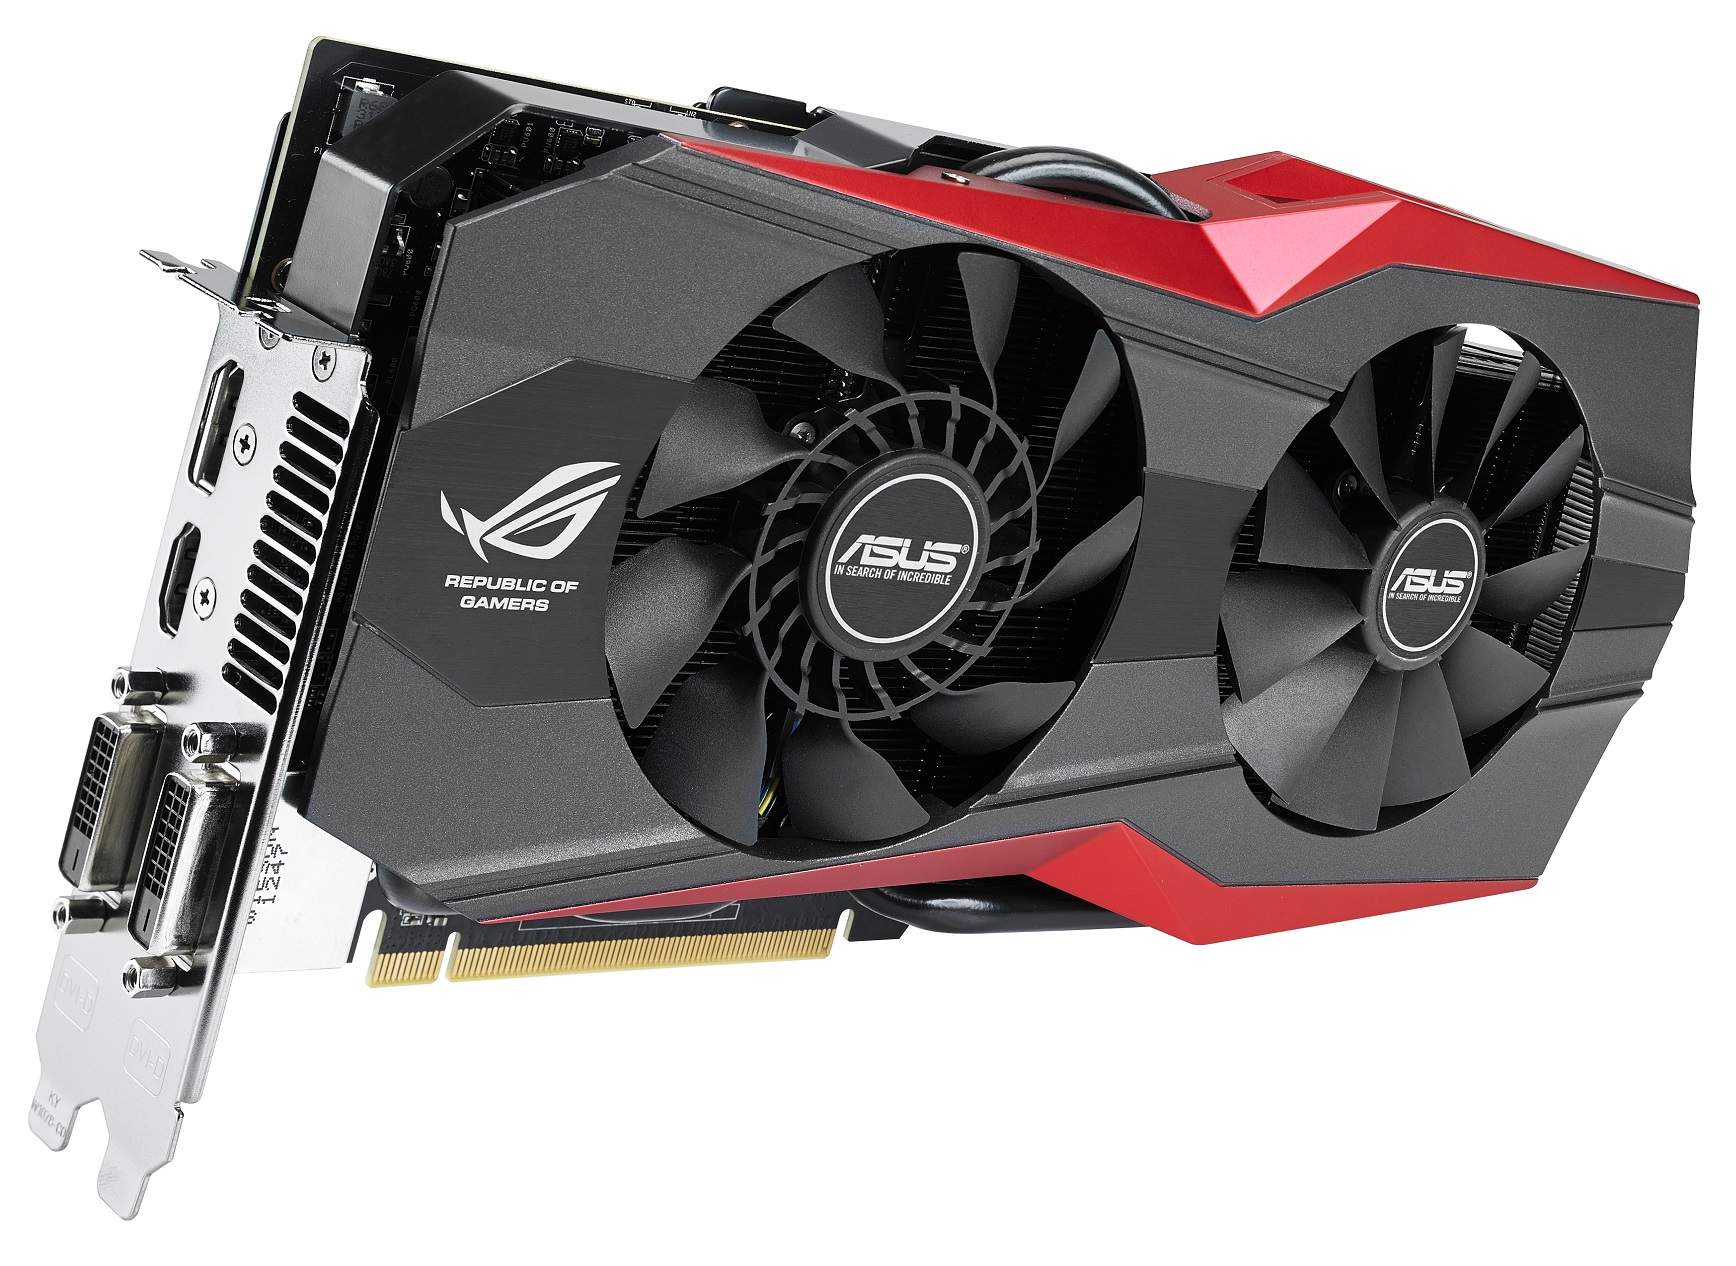 ASUS ROG MATRIX R9 290X And GTX 780 Ti Platinum Spotted